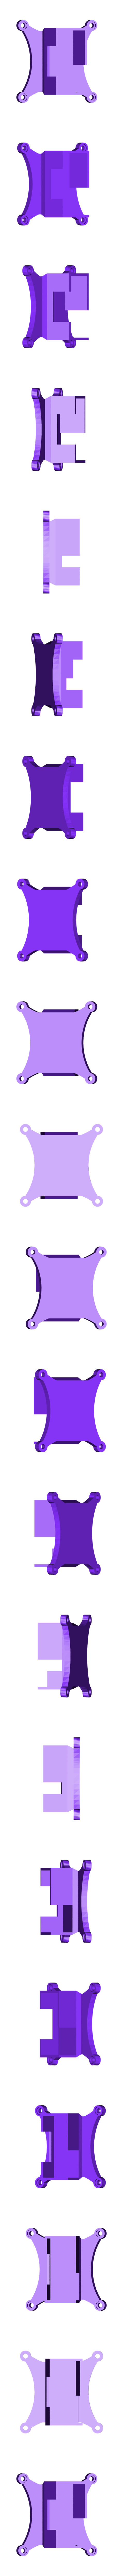 Tiny_whoop_croix__68mm_capot_10camera.stl Download free STL file Tiny Whoop 68mm polycarbonate cross fashion • 3D printer design, Microdure